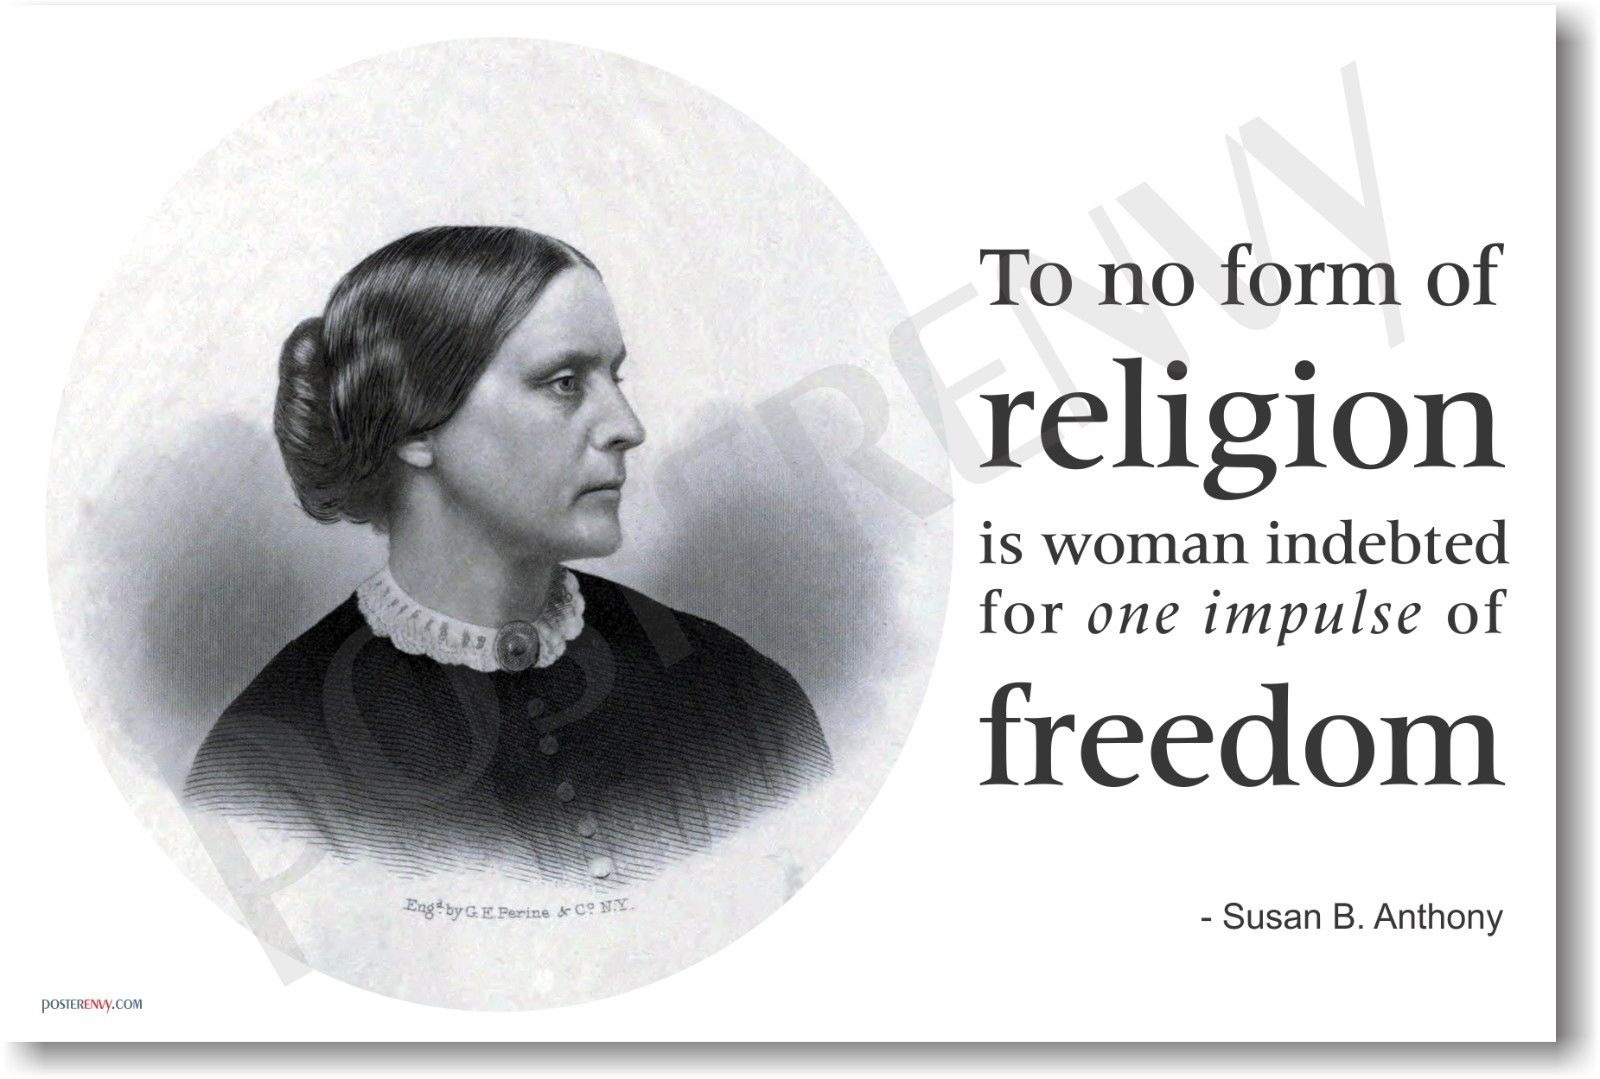 174078 Susan B Anthony Famous Person damen Suffrage Decor WALL PRINT POSTER CA